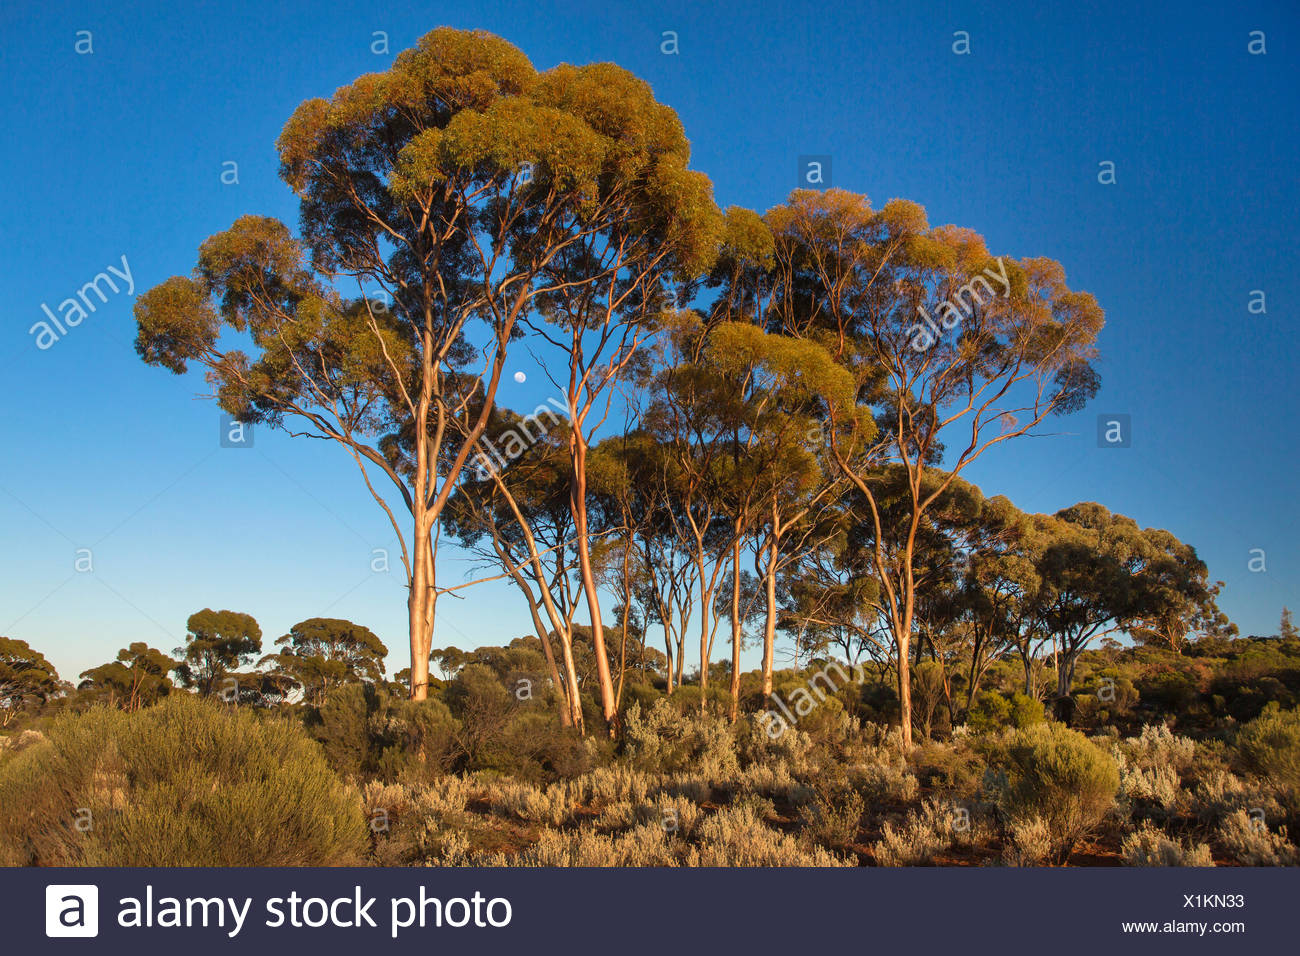 Eucalyptus Trees Stock Photos & Eucalyptus Trees Stock